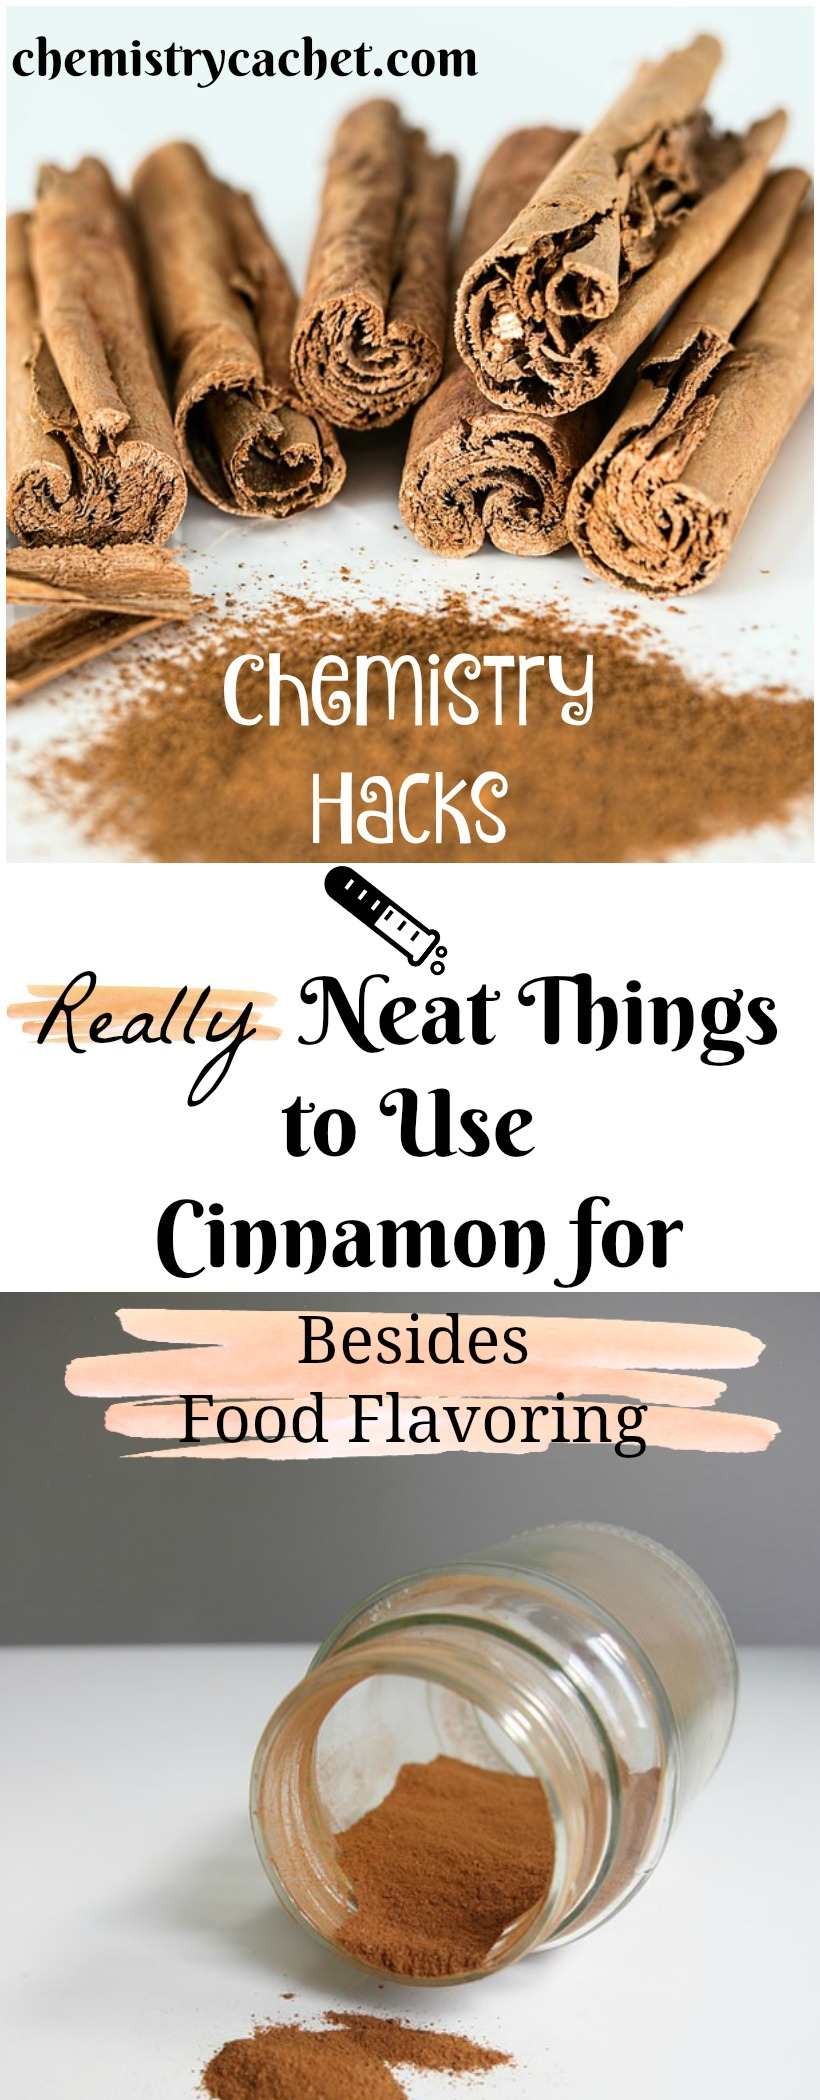 Chemistry Hacks presents REALLY neat things to use cinnamon for...besides flavoring food. Using cinnamon in the garden and more on chemistrycachet.com